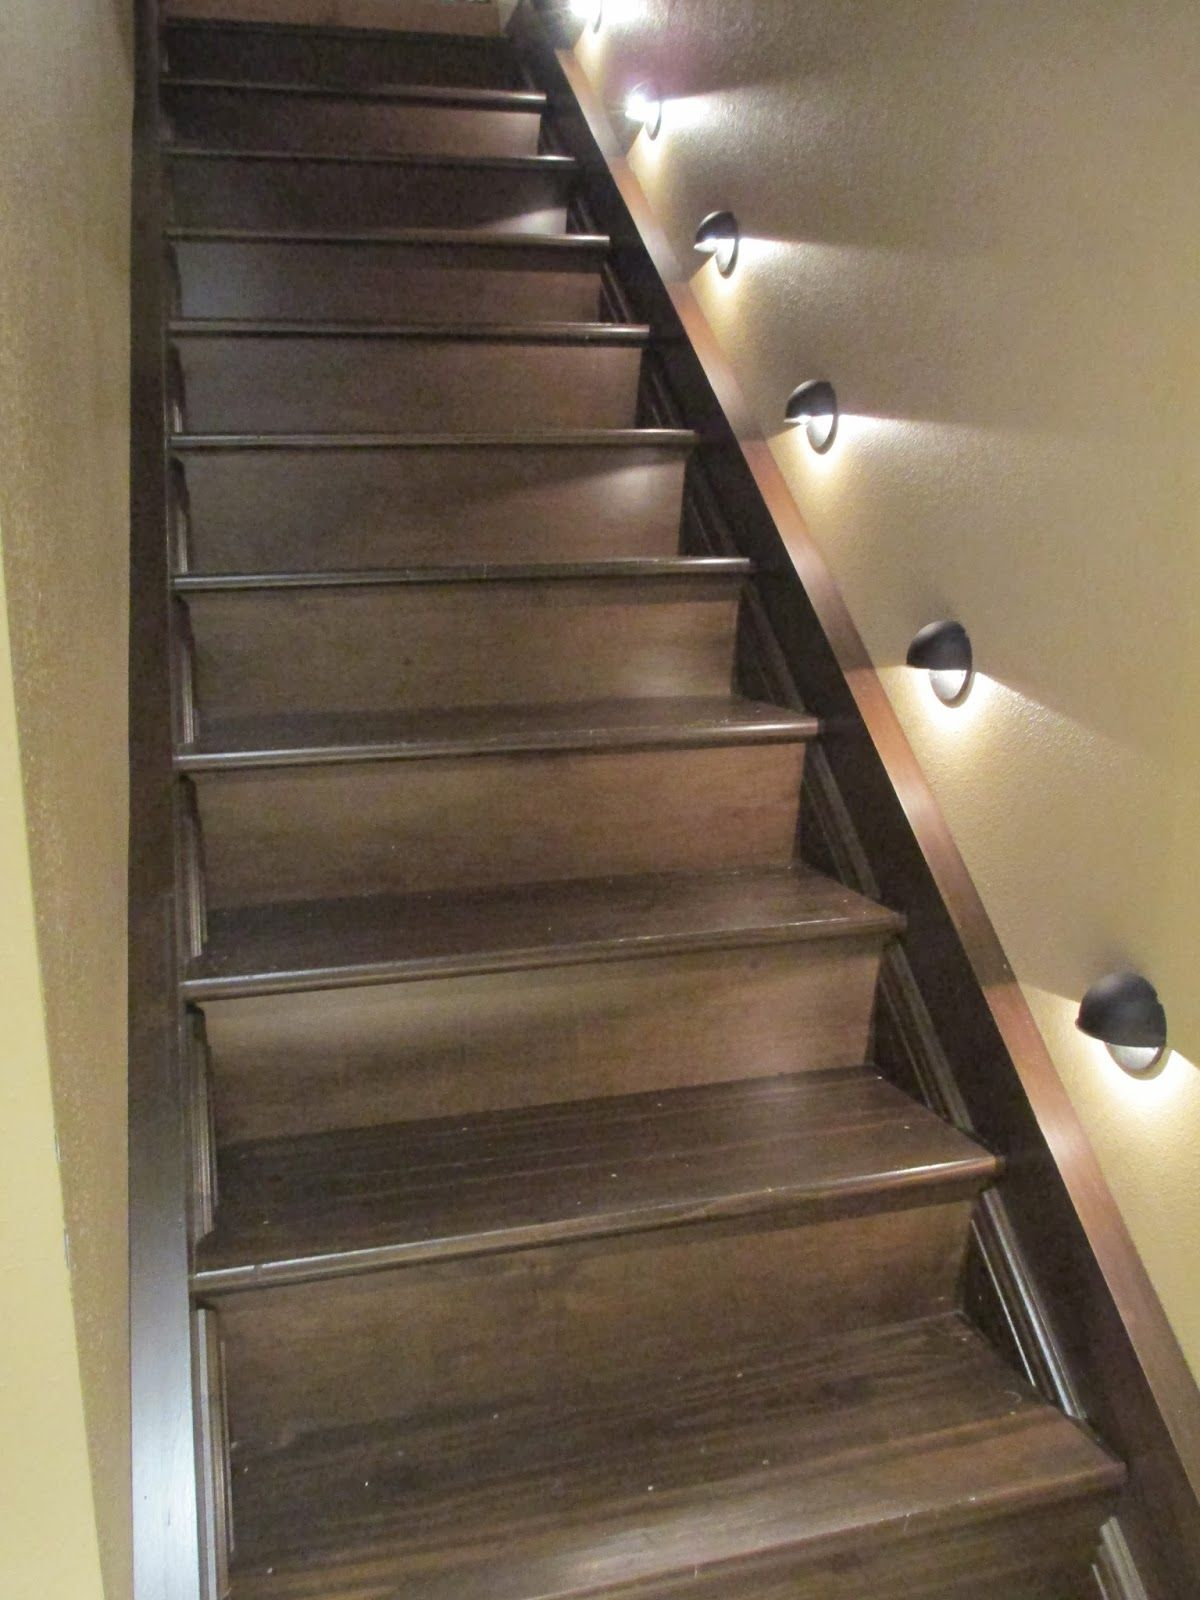 Basement Stair Ceiling Lighting: Great Idea For Lighting Steps To The Basement!